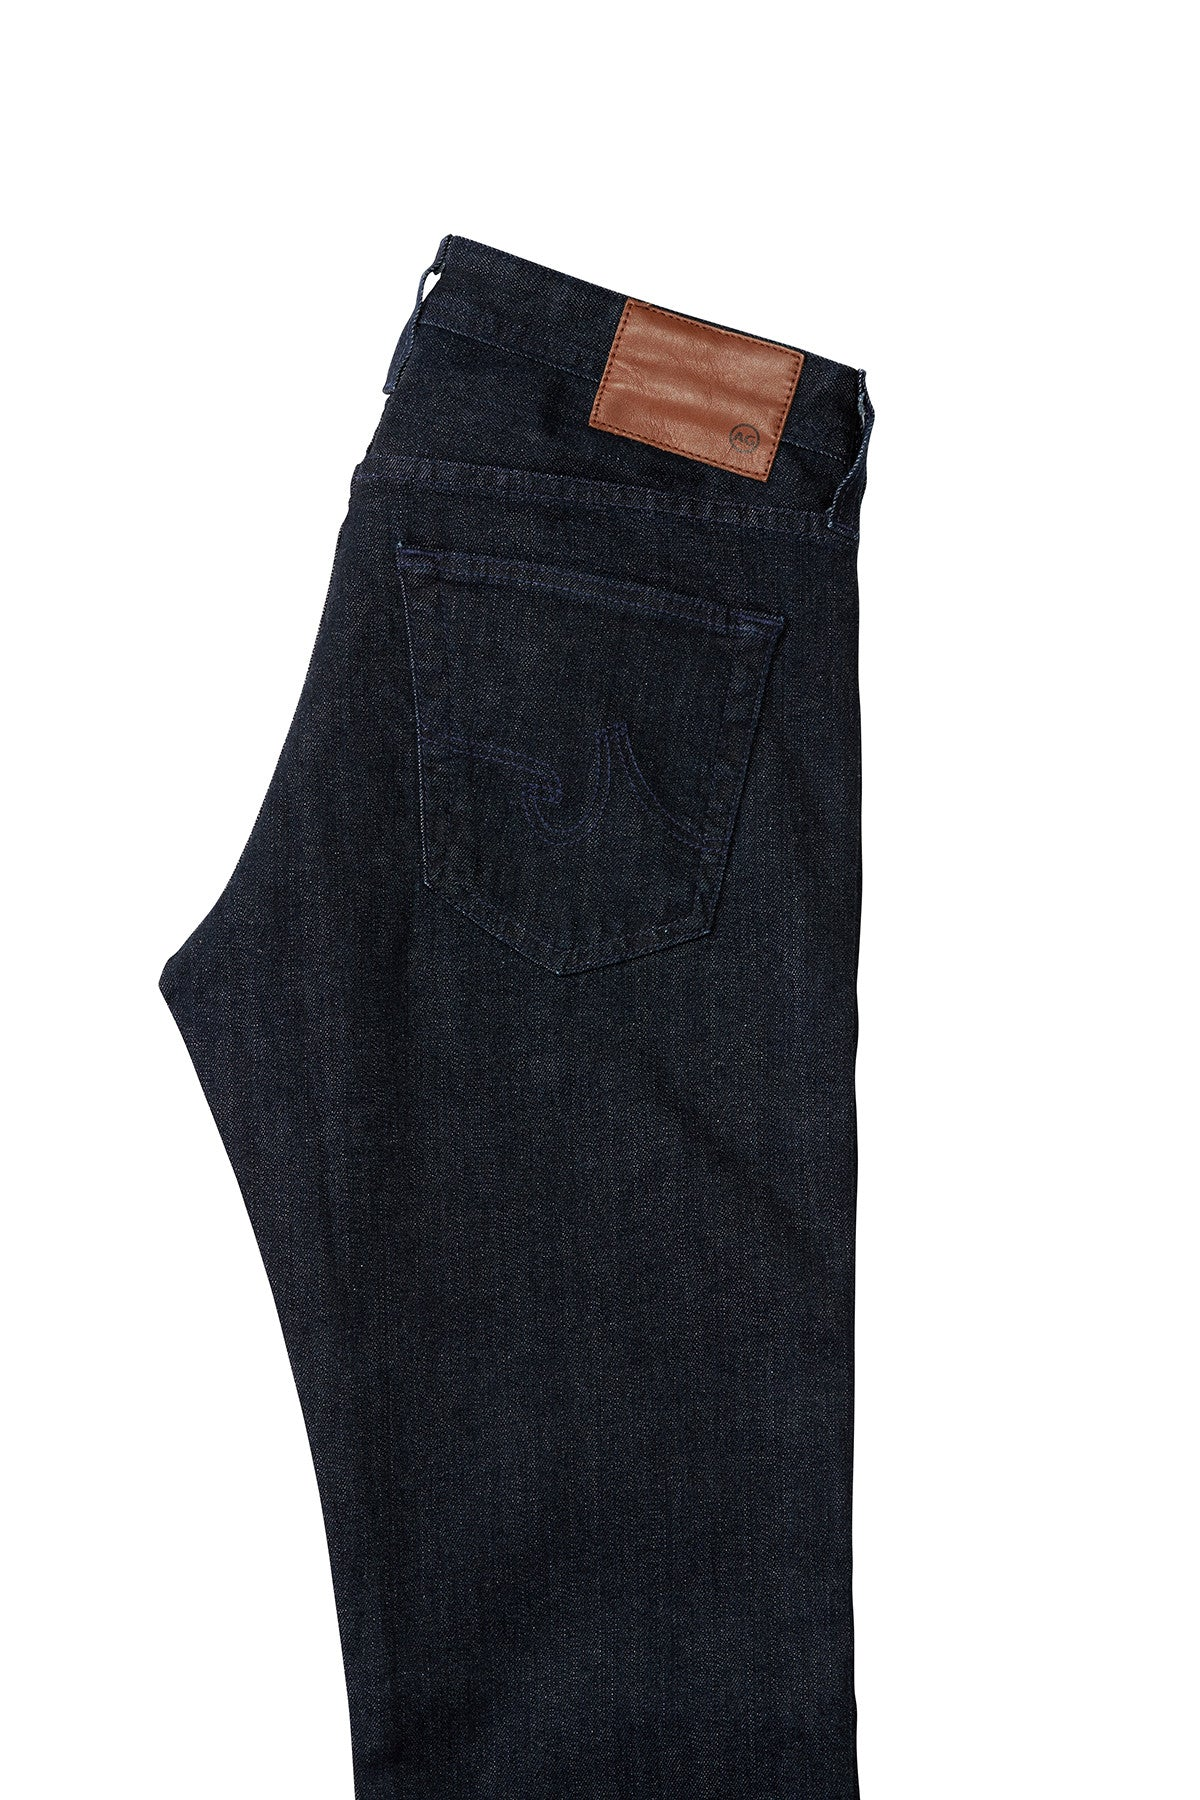 AG 'Matchbox' Slim Fit Dark Wash Jeans (Heat)